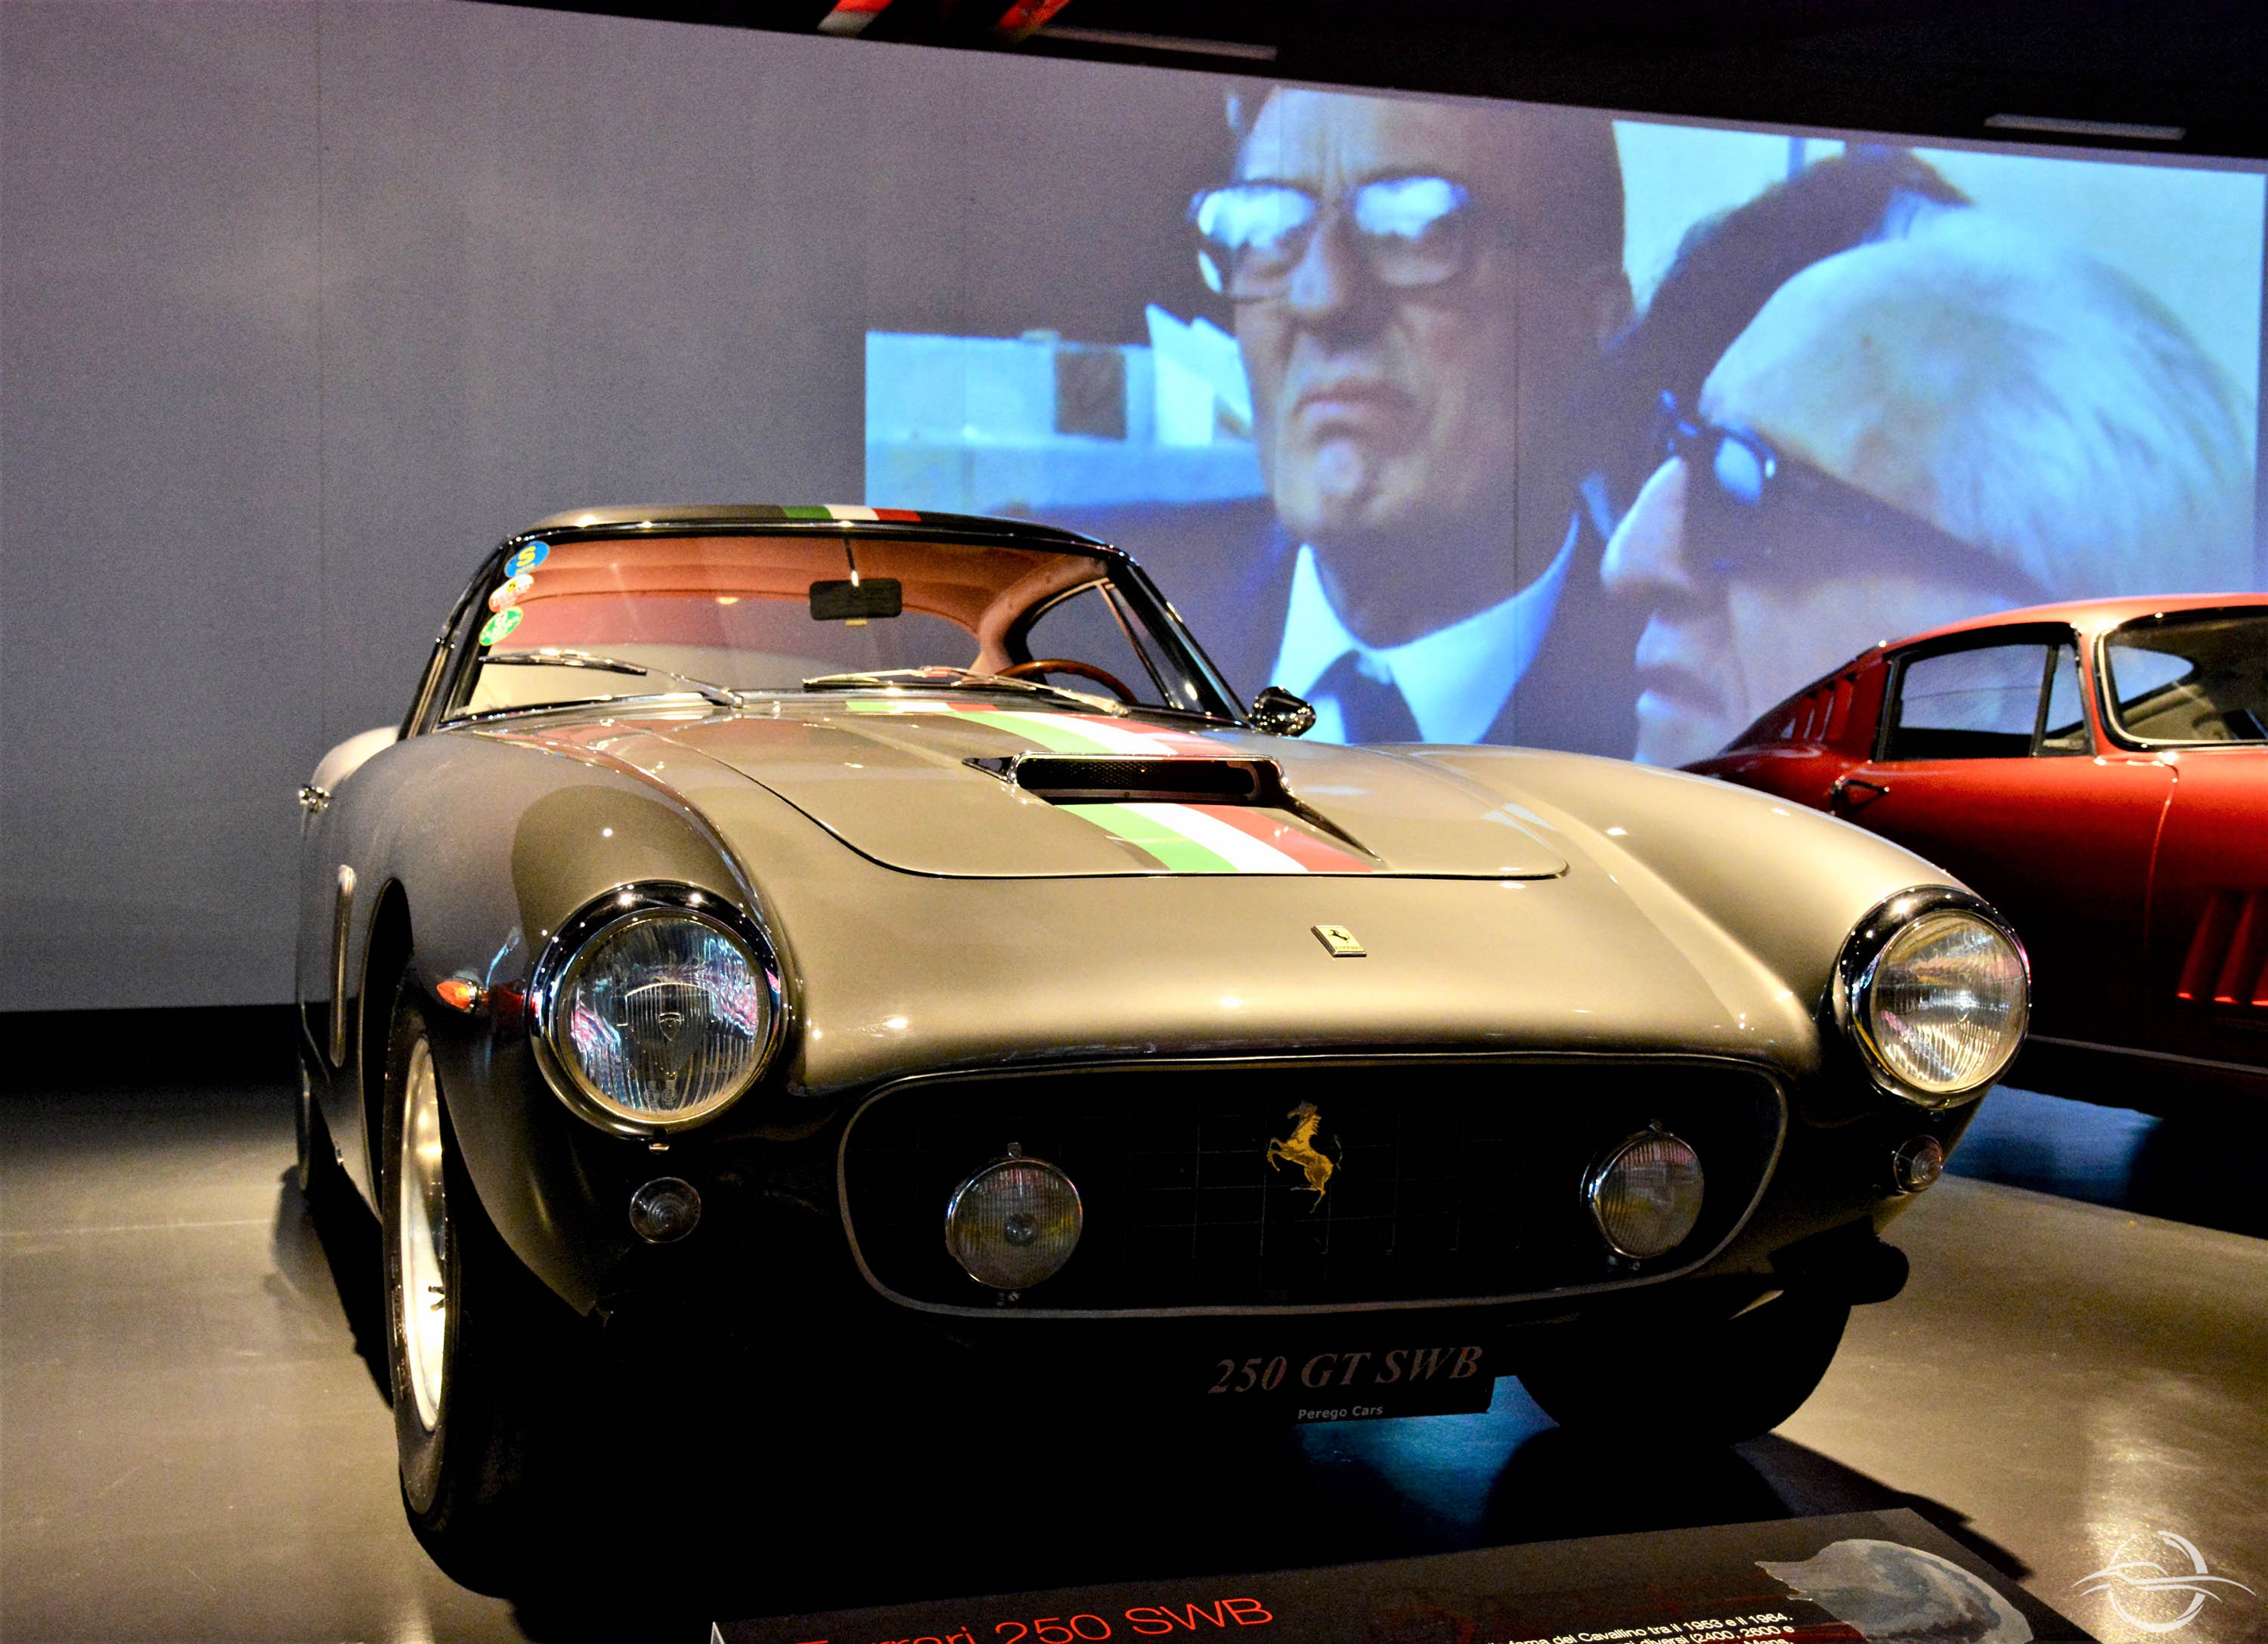 Ferrari 250 SWB in the foreground - Sergio Scaglietti and Enzo Ferrari in the background - MAUTO Torino